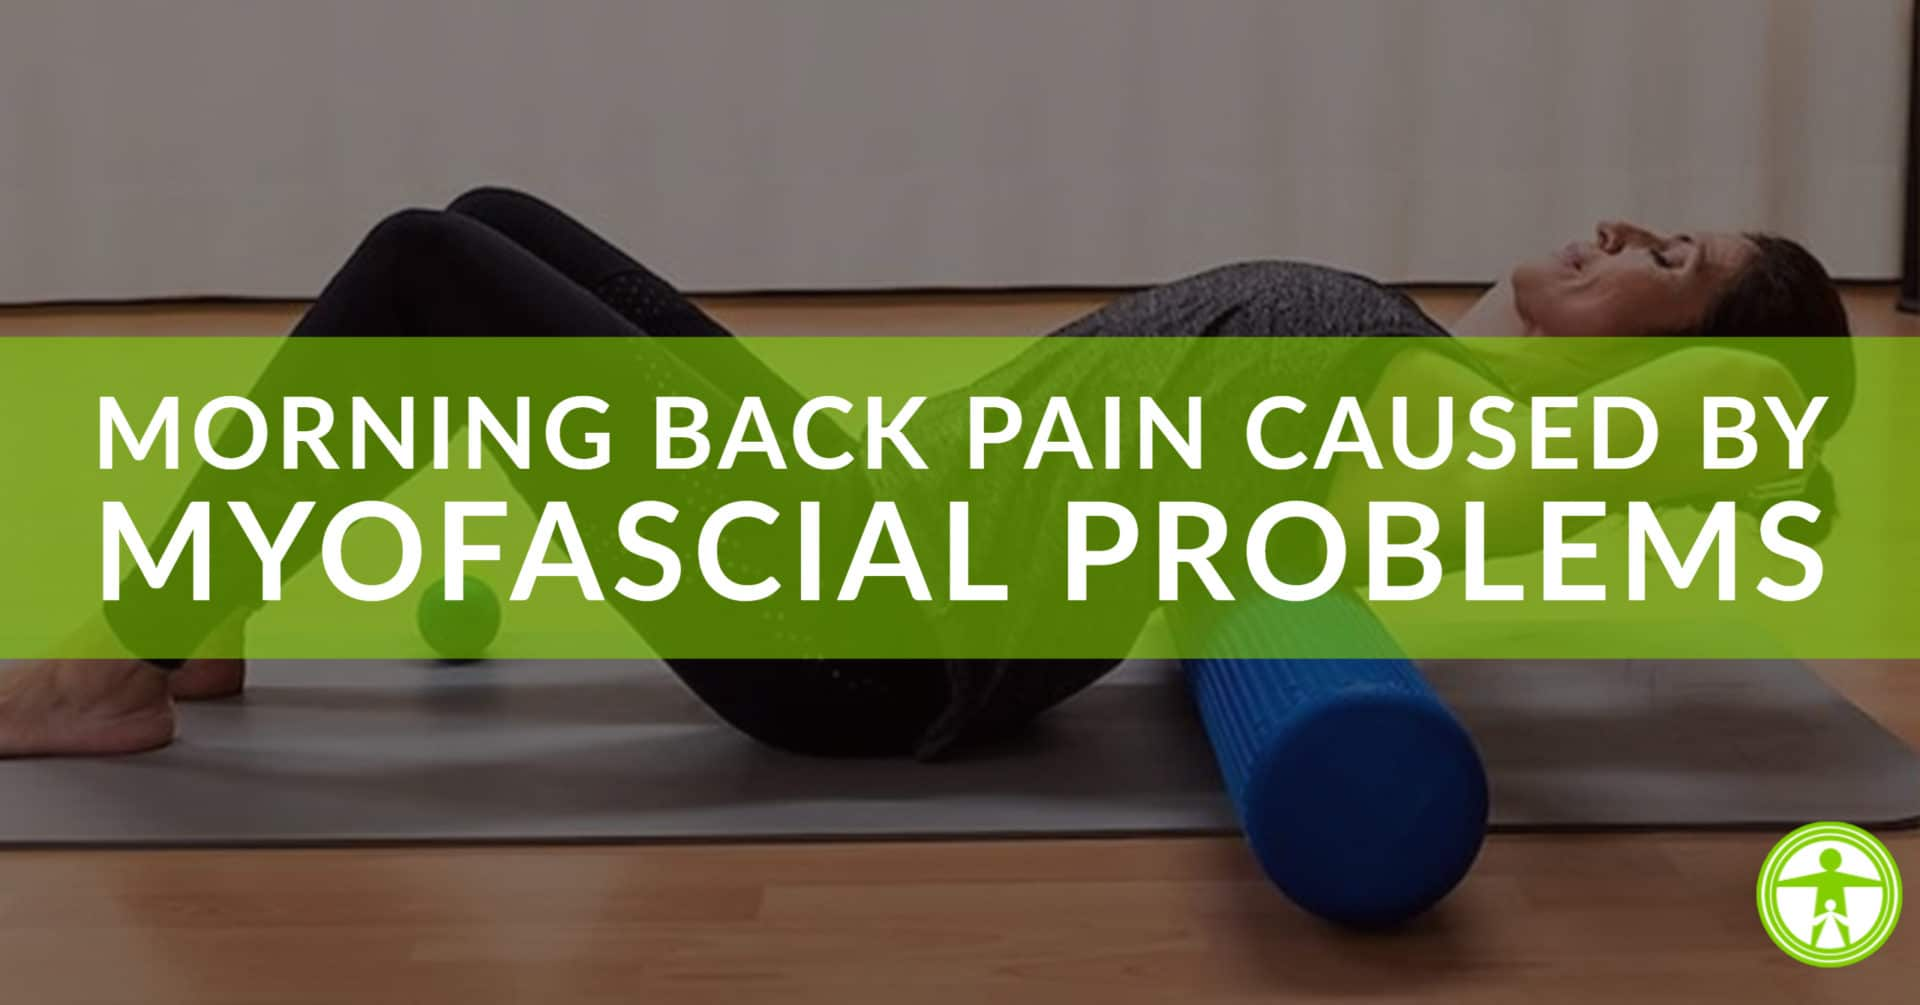 morning back pain caused by myofascial problems